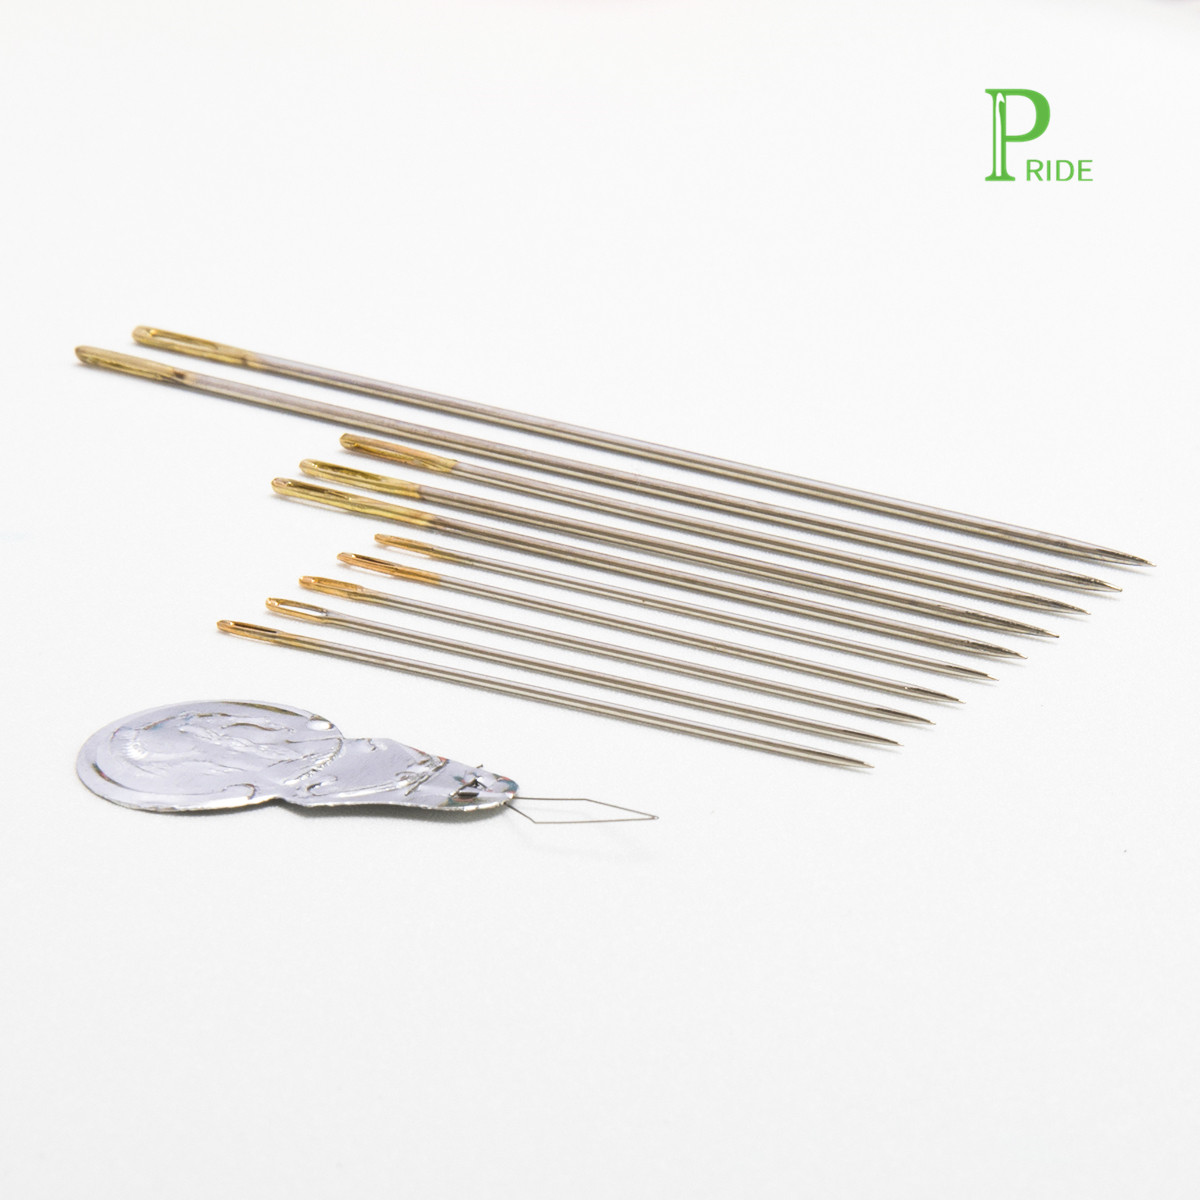 Wholesale hand sewing needles hand embroidery needles cross stitch needles for housework